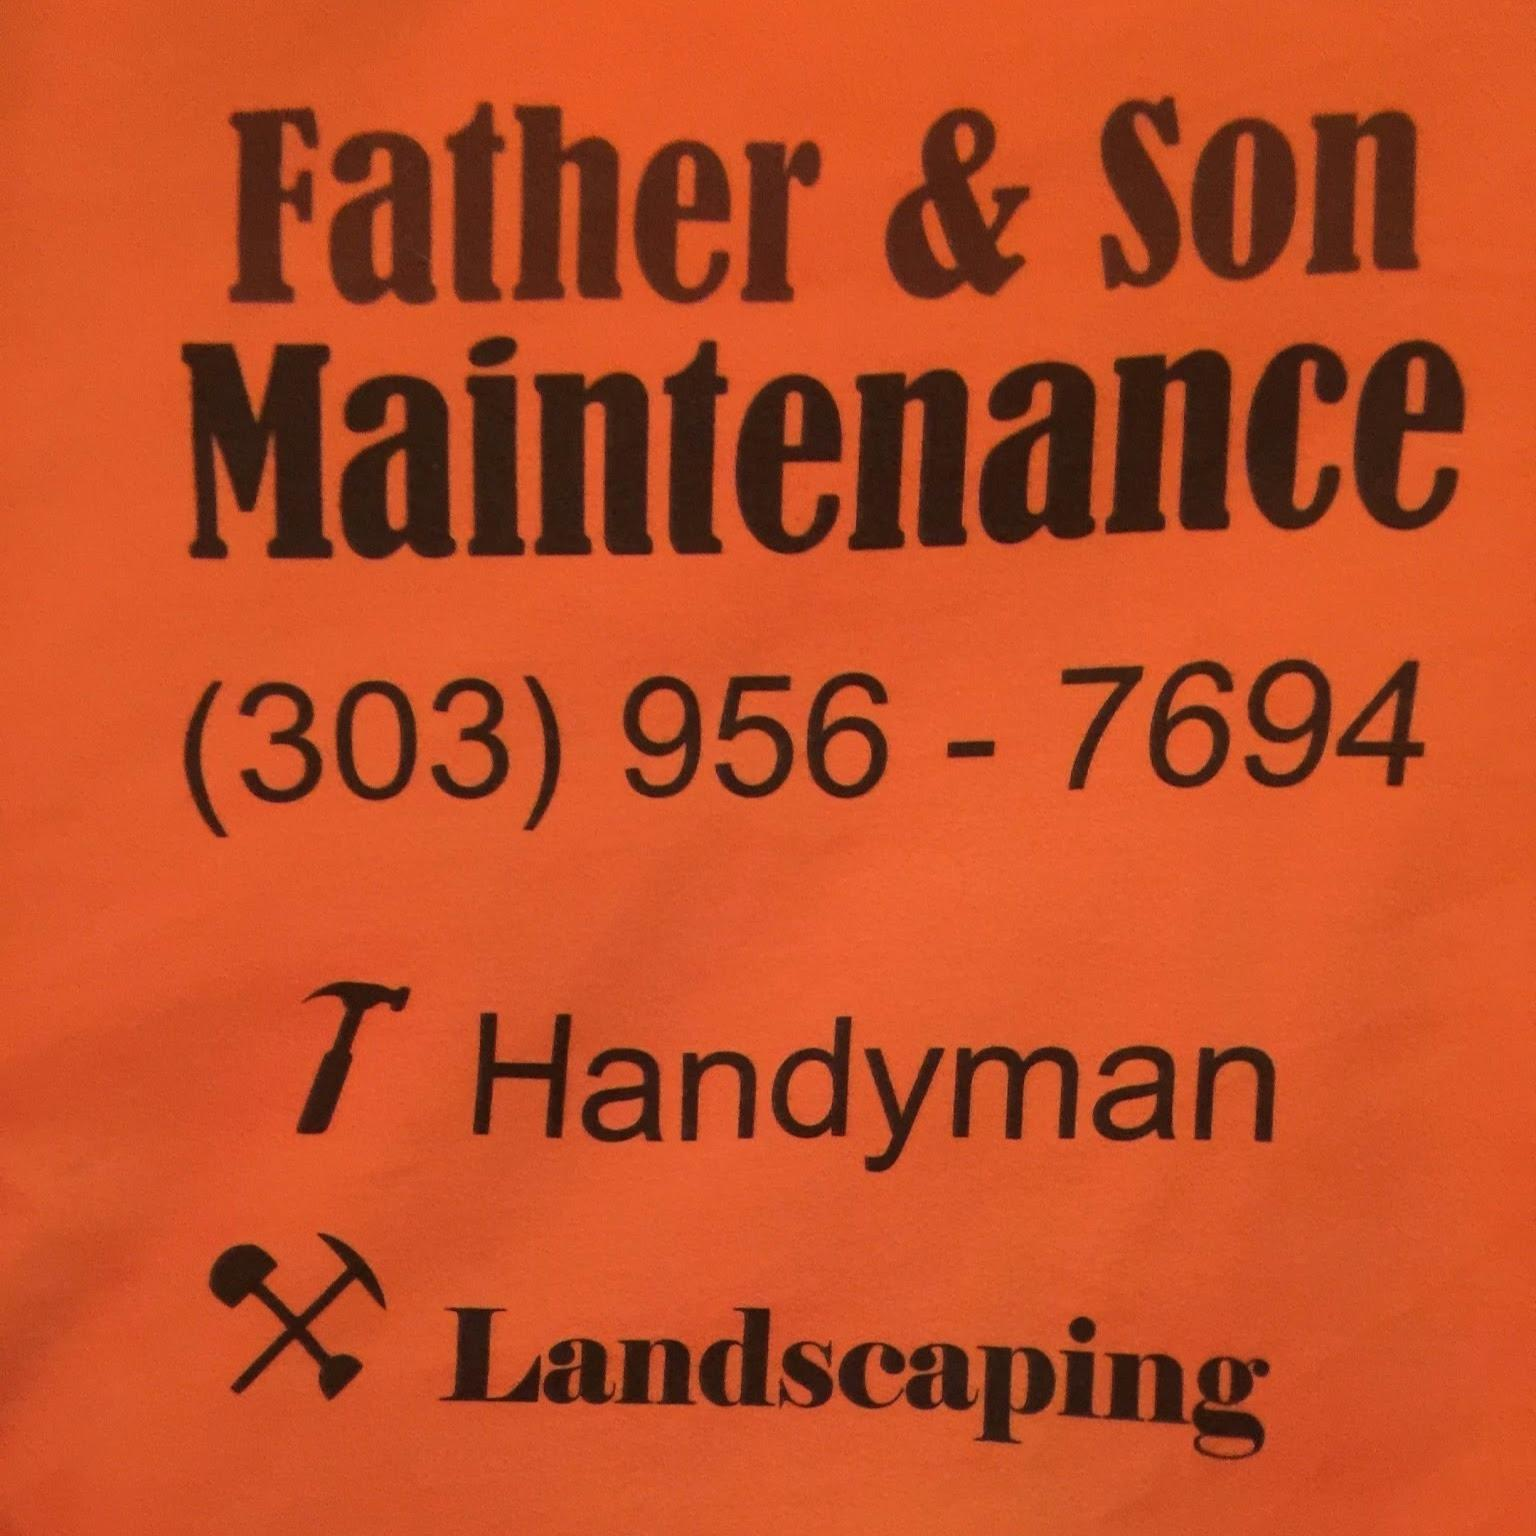 Father and Son Maintenance - Aurora, CO - Handyman Services